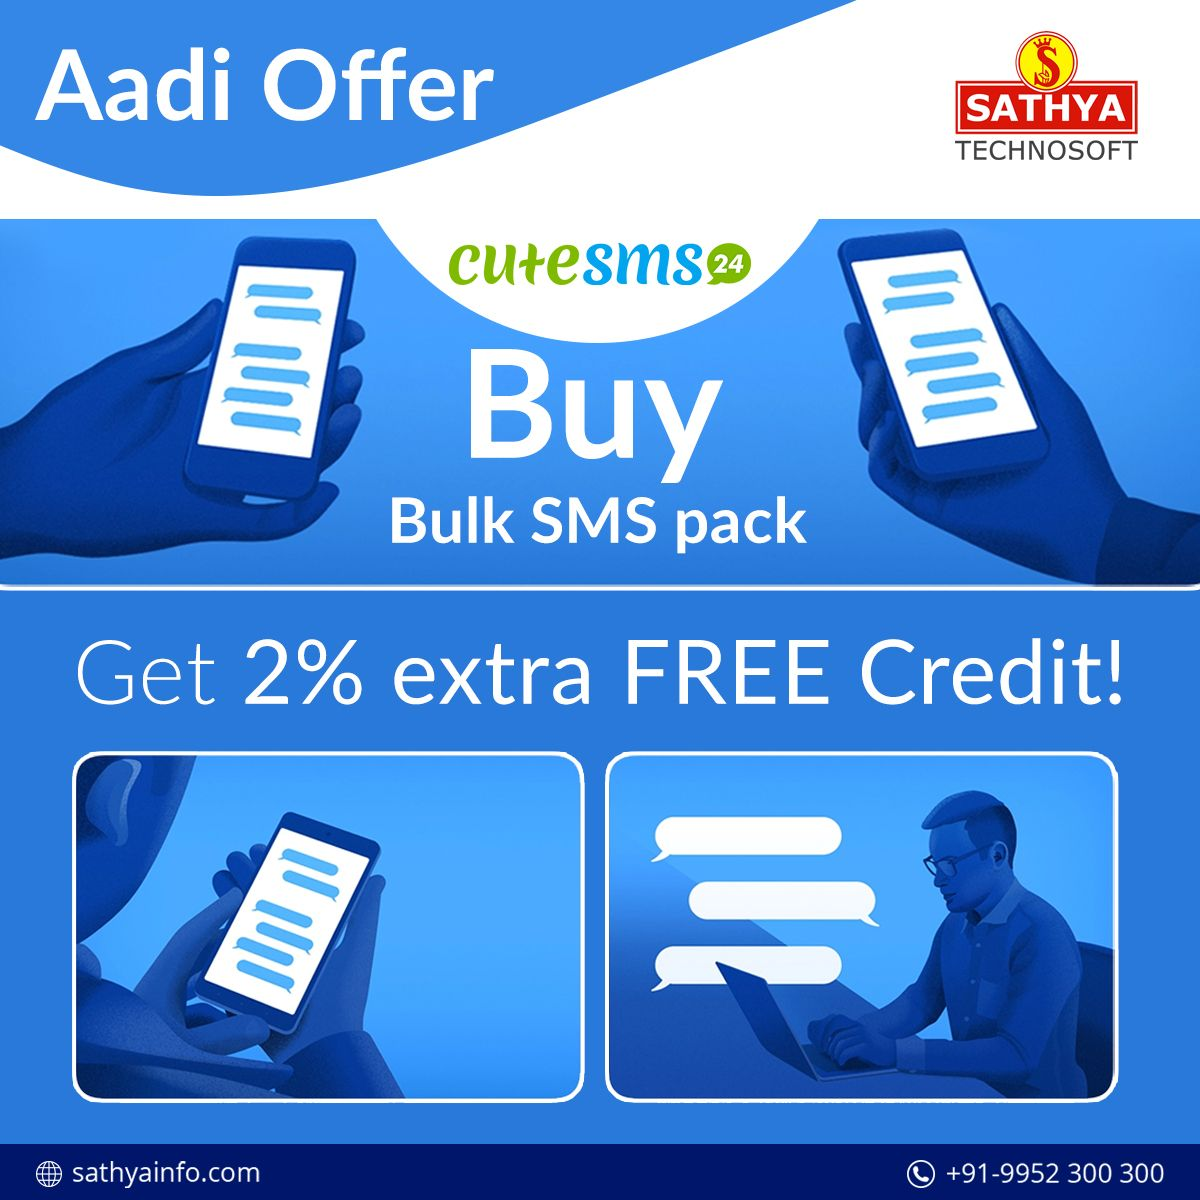 Aadi Offer! Buy our Bulk SMS pack and Get 2 extra FREE